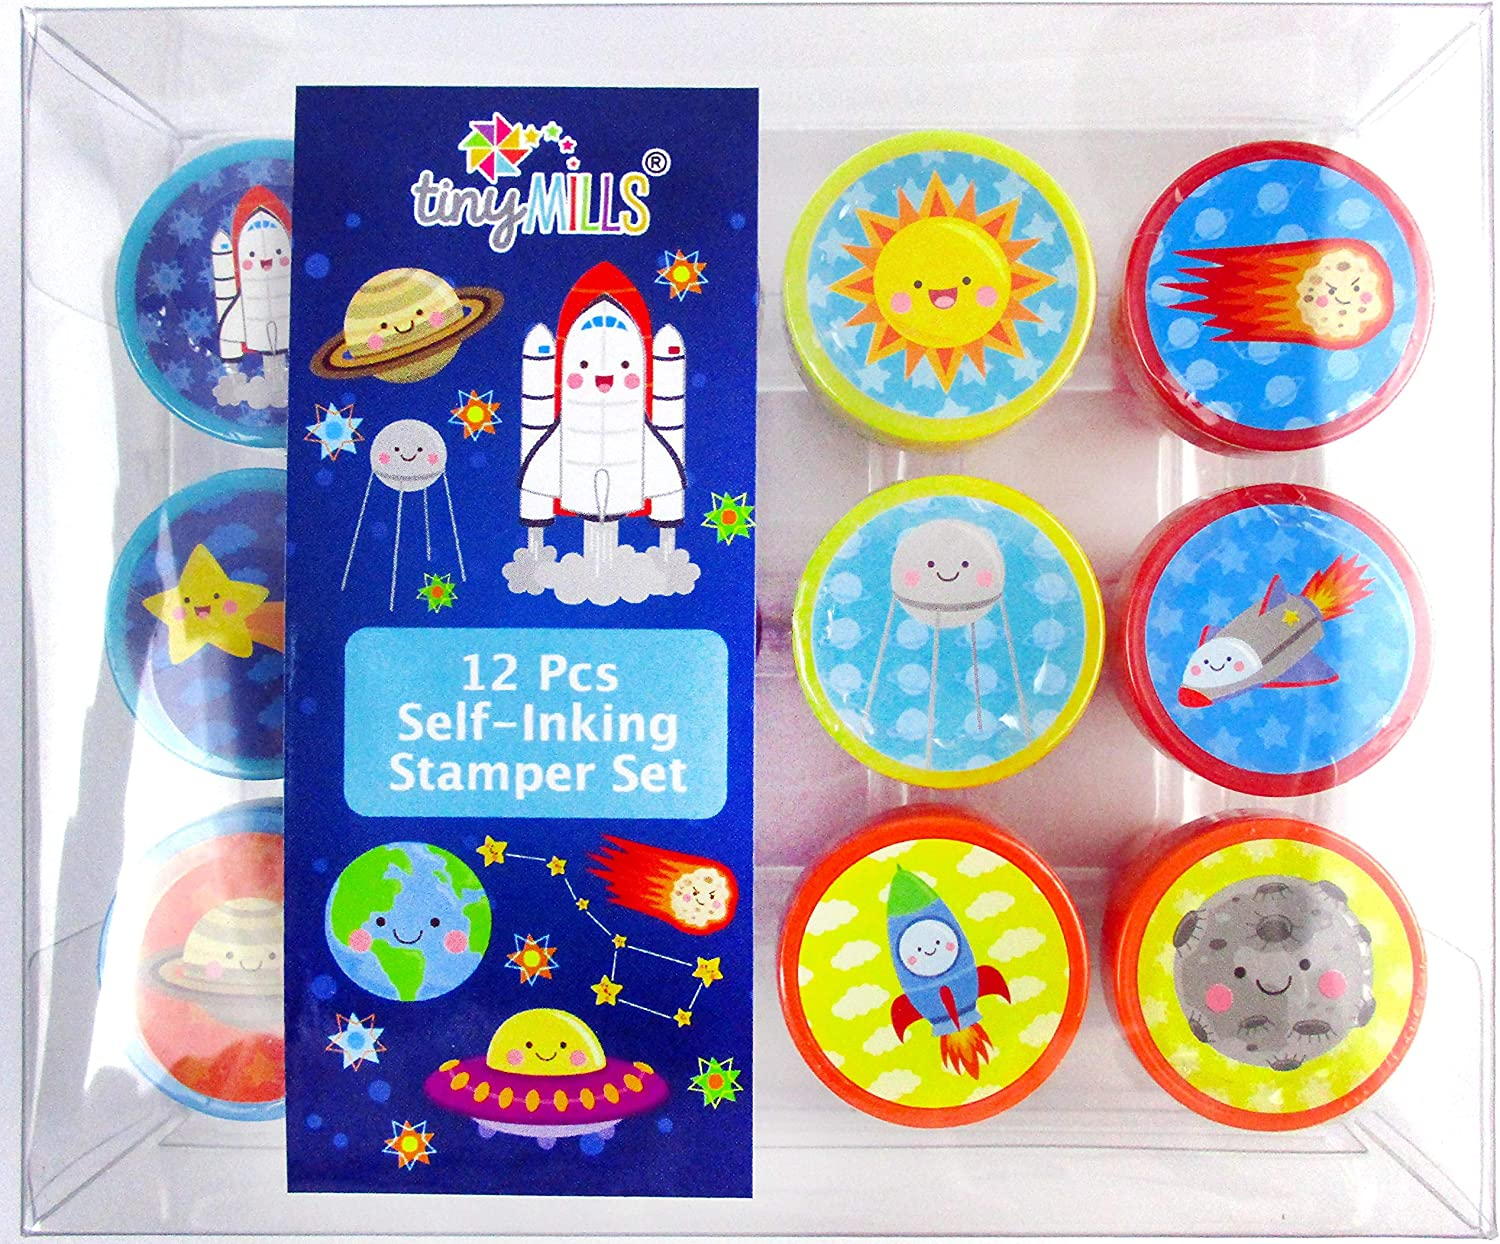 TINYMILLS 12 Pcs Outer Space Stamp Kit for Kids